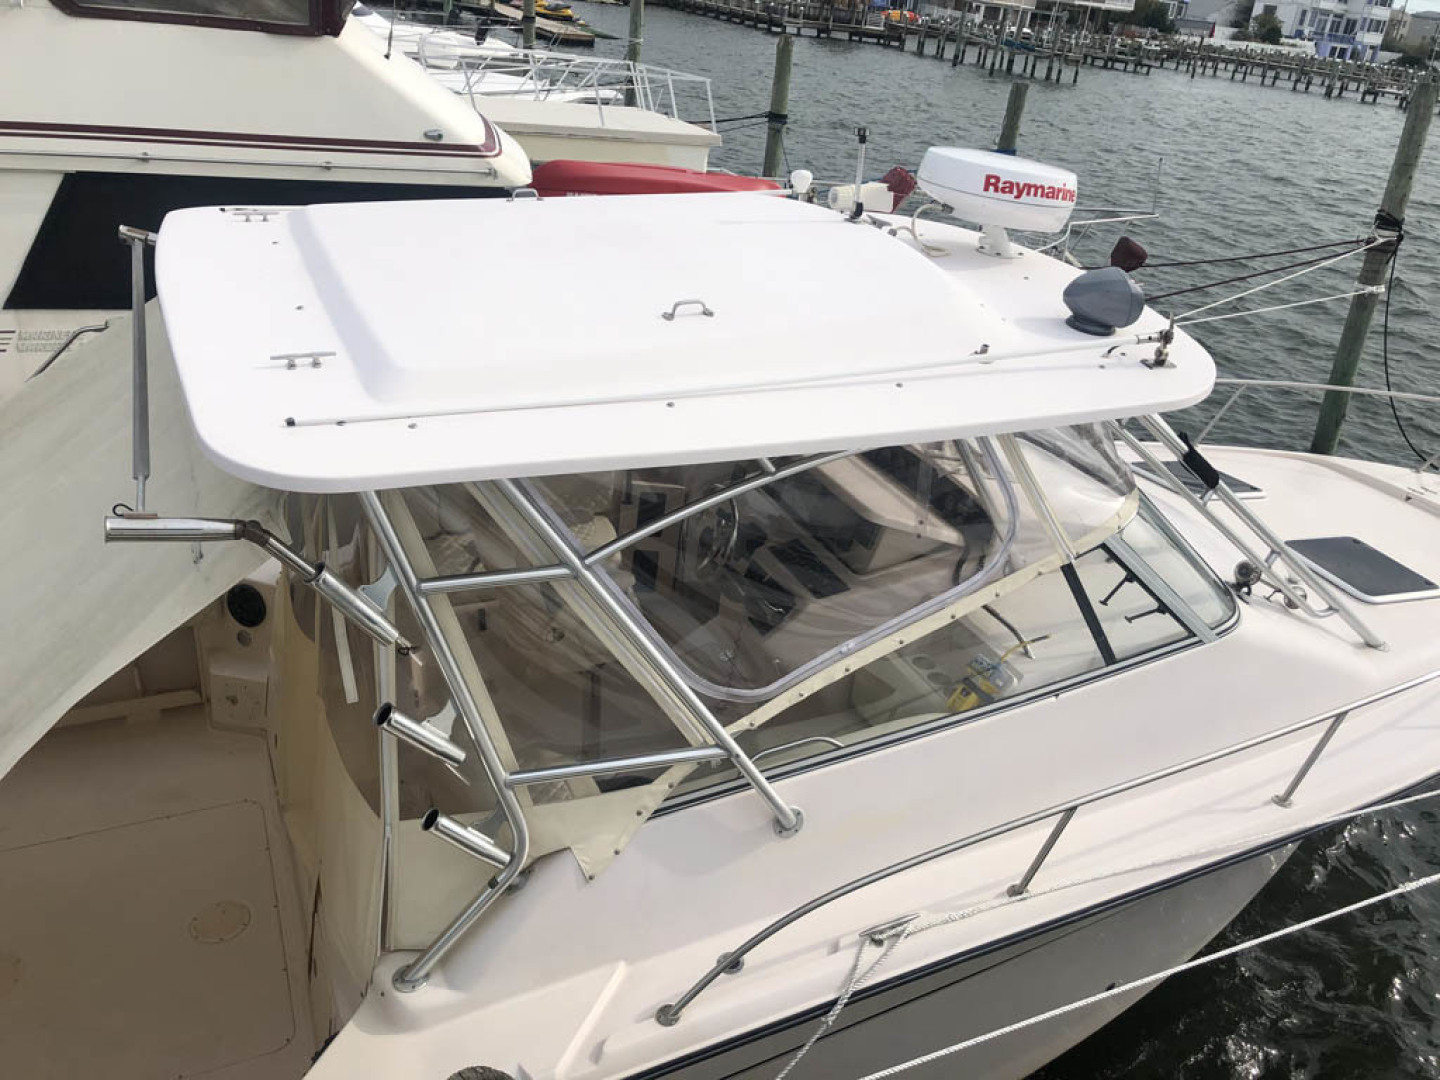 Grady-White-330 Express 2003-Lady L III Long Beach Township-New Jersey-United States-Starboard View   Hardtop-1510555 | Thumbnail